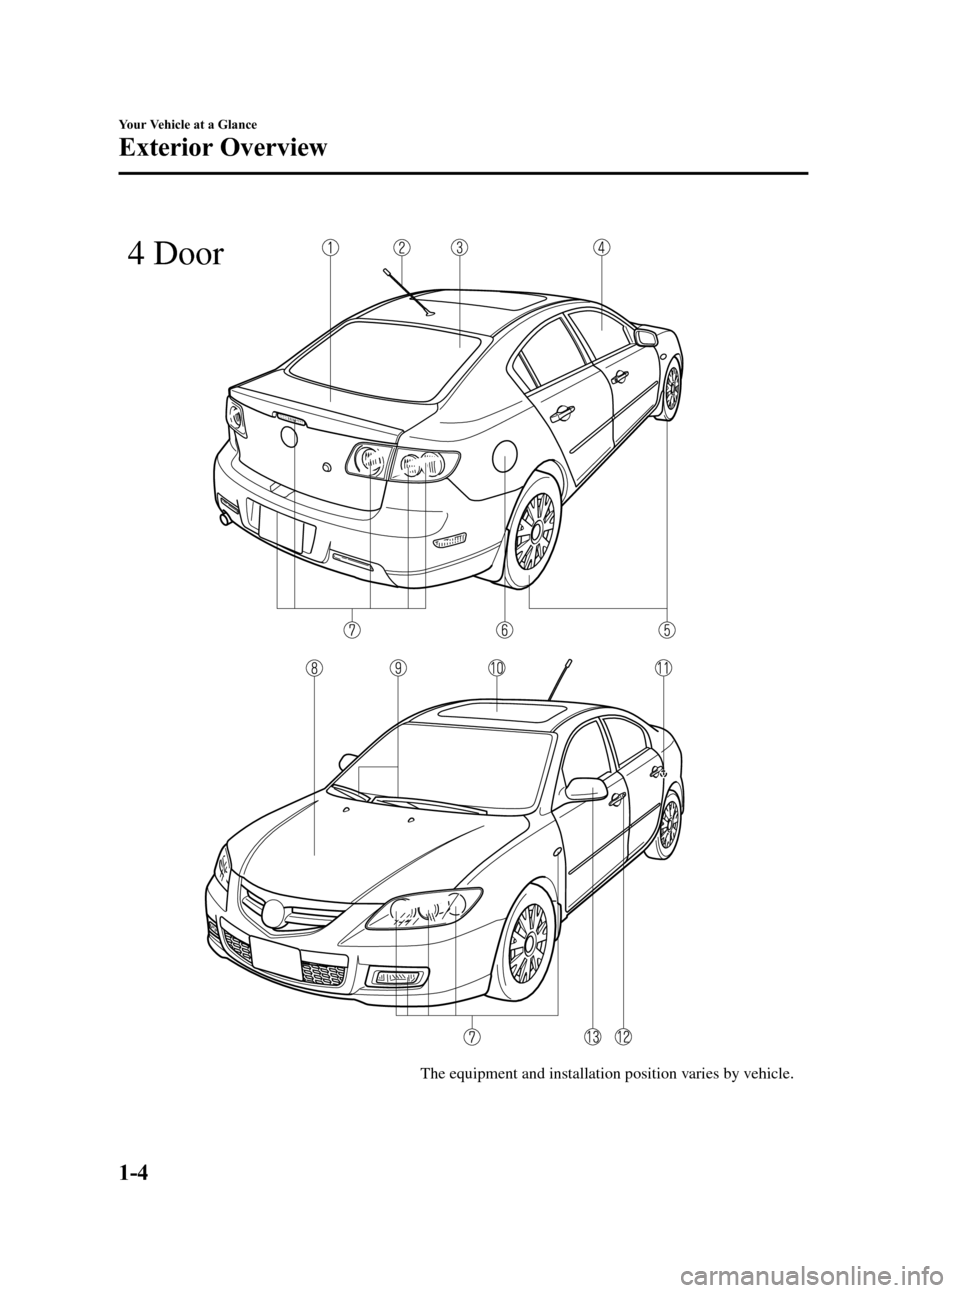 MAZDA MODEL 3 HATCHBACK 2007  Owners Manual (in English) Black plate (10,1) The equipment and installation position varies by vehicle. 4 Door 1-4 Your Vehicle at a Glance Exterior Overview Mazda3_8V66-EA-06F_Edition3 Page10 Wednesday, August 23 2006 11:18 A